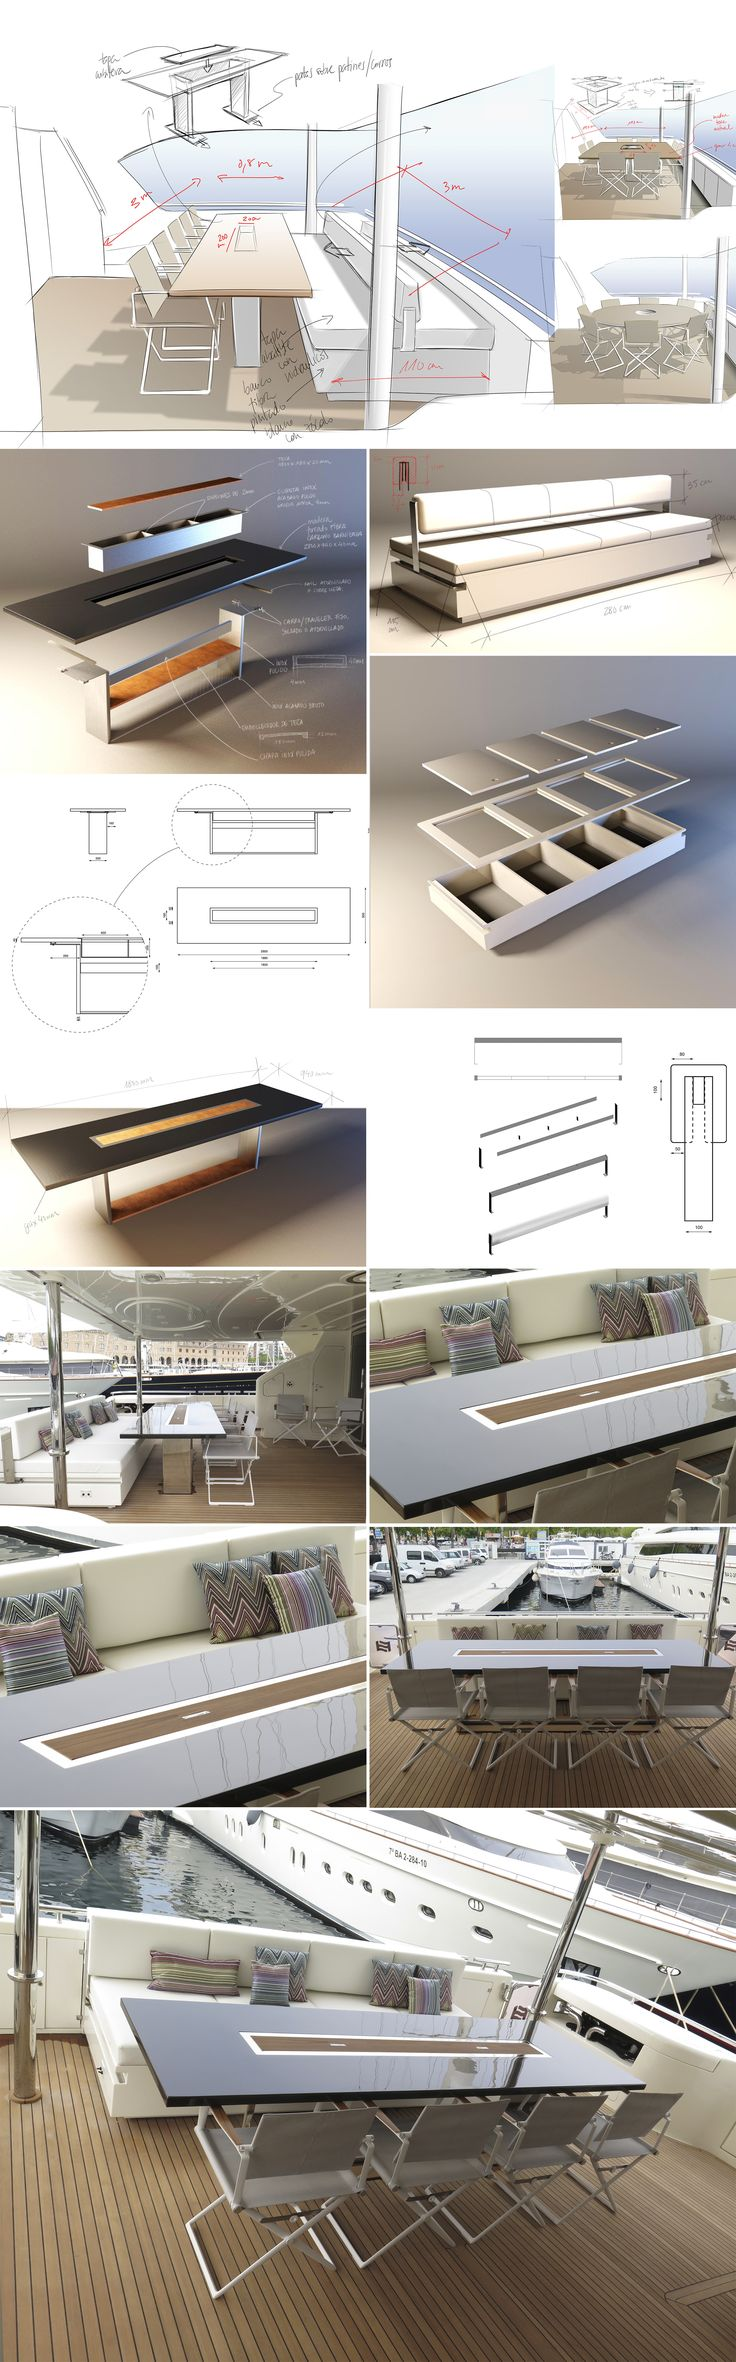 81 Best Yacht Sketch Images On Pinterest